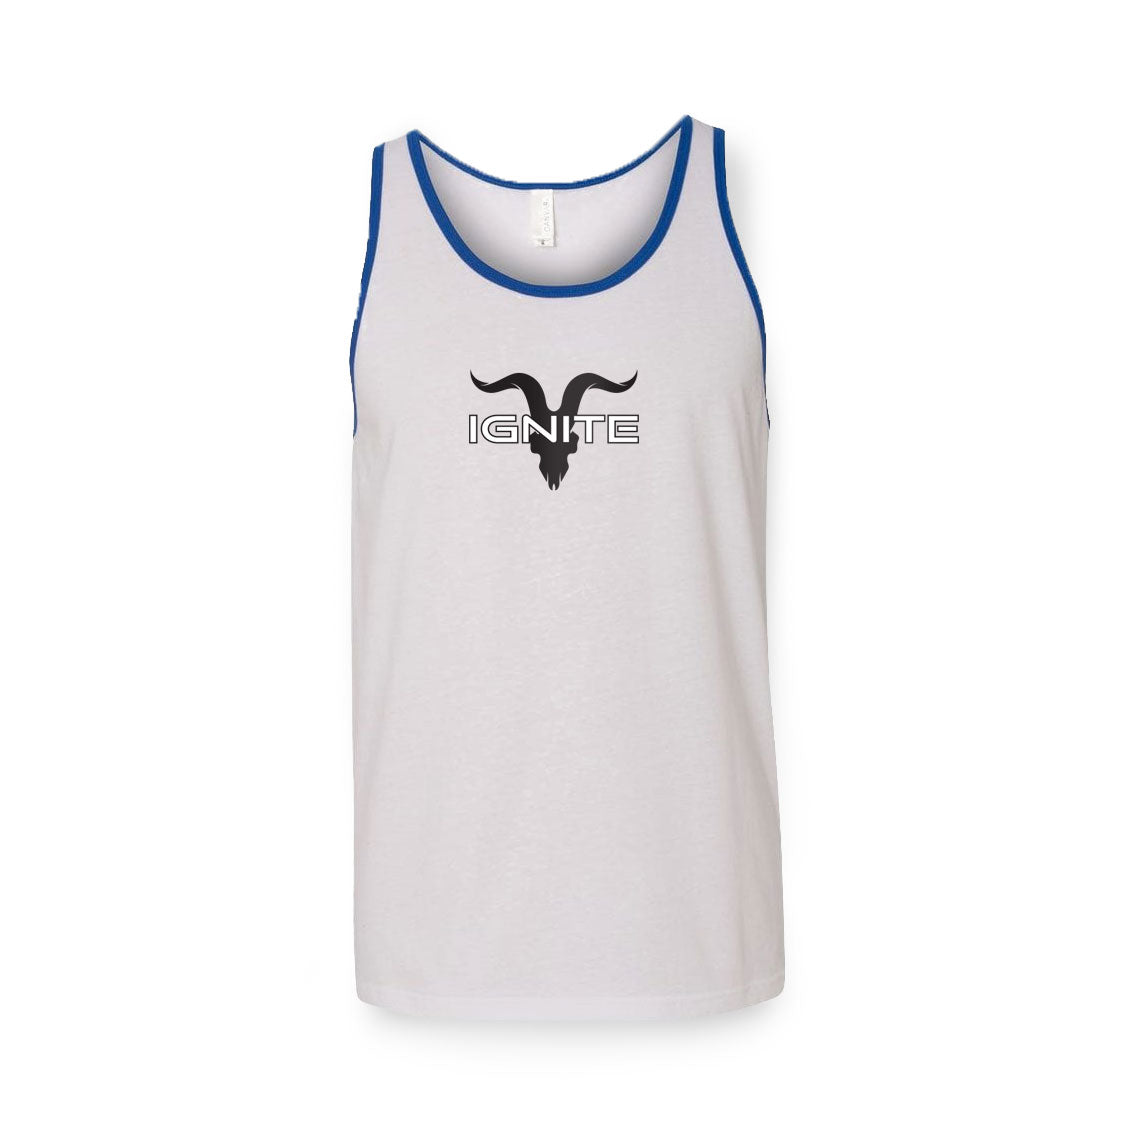 Ignite Premium Collection Jersey Sleeveless Shirt - White with Blue Lining